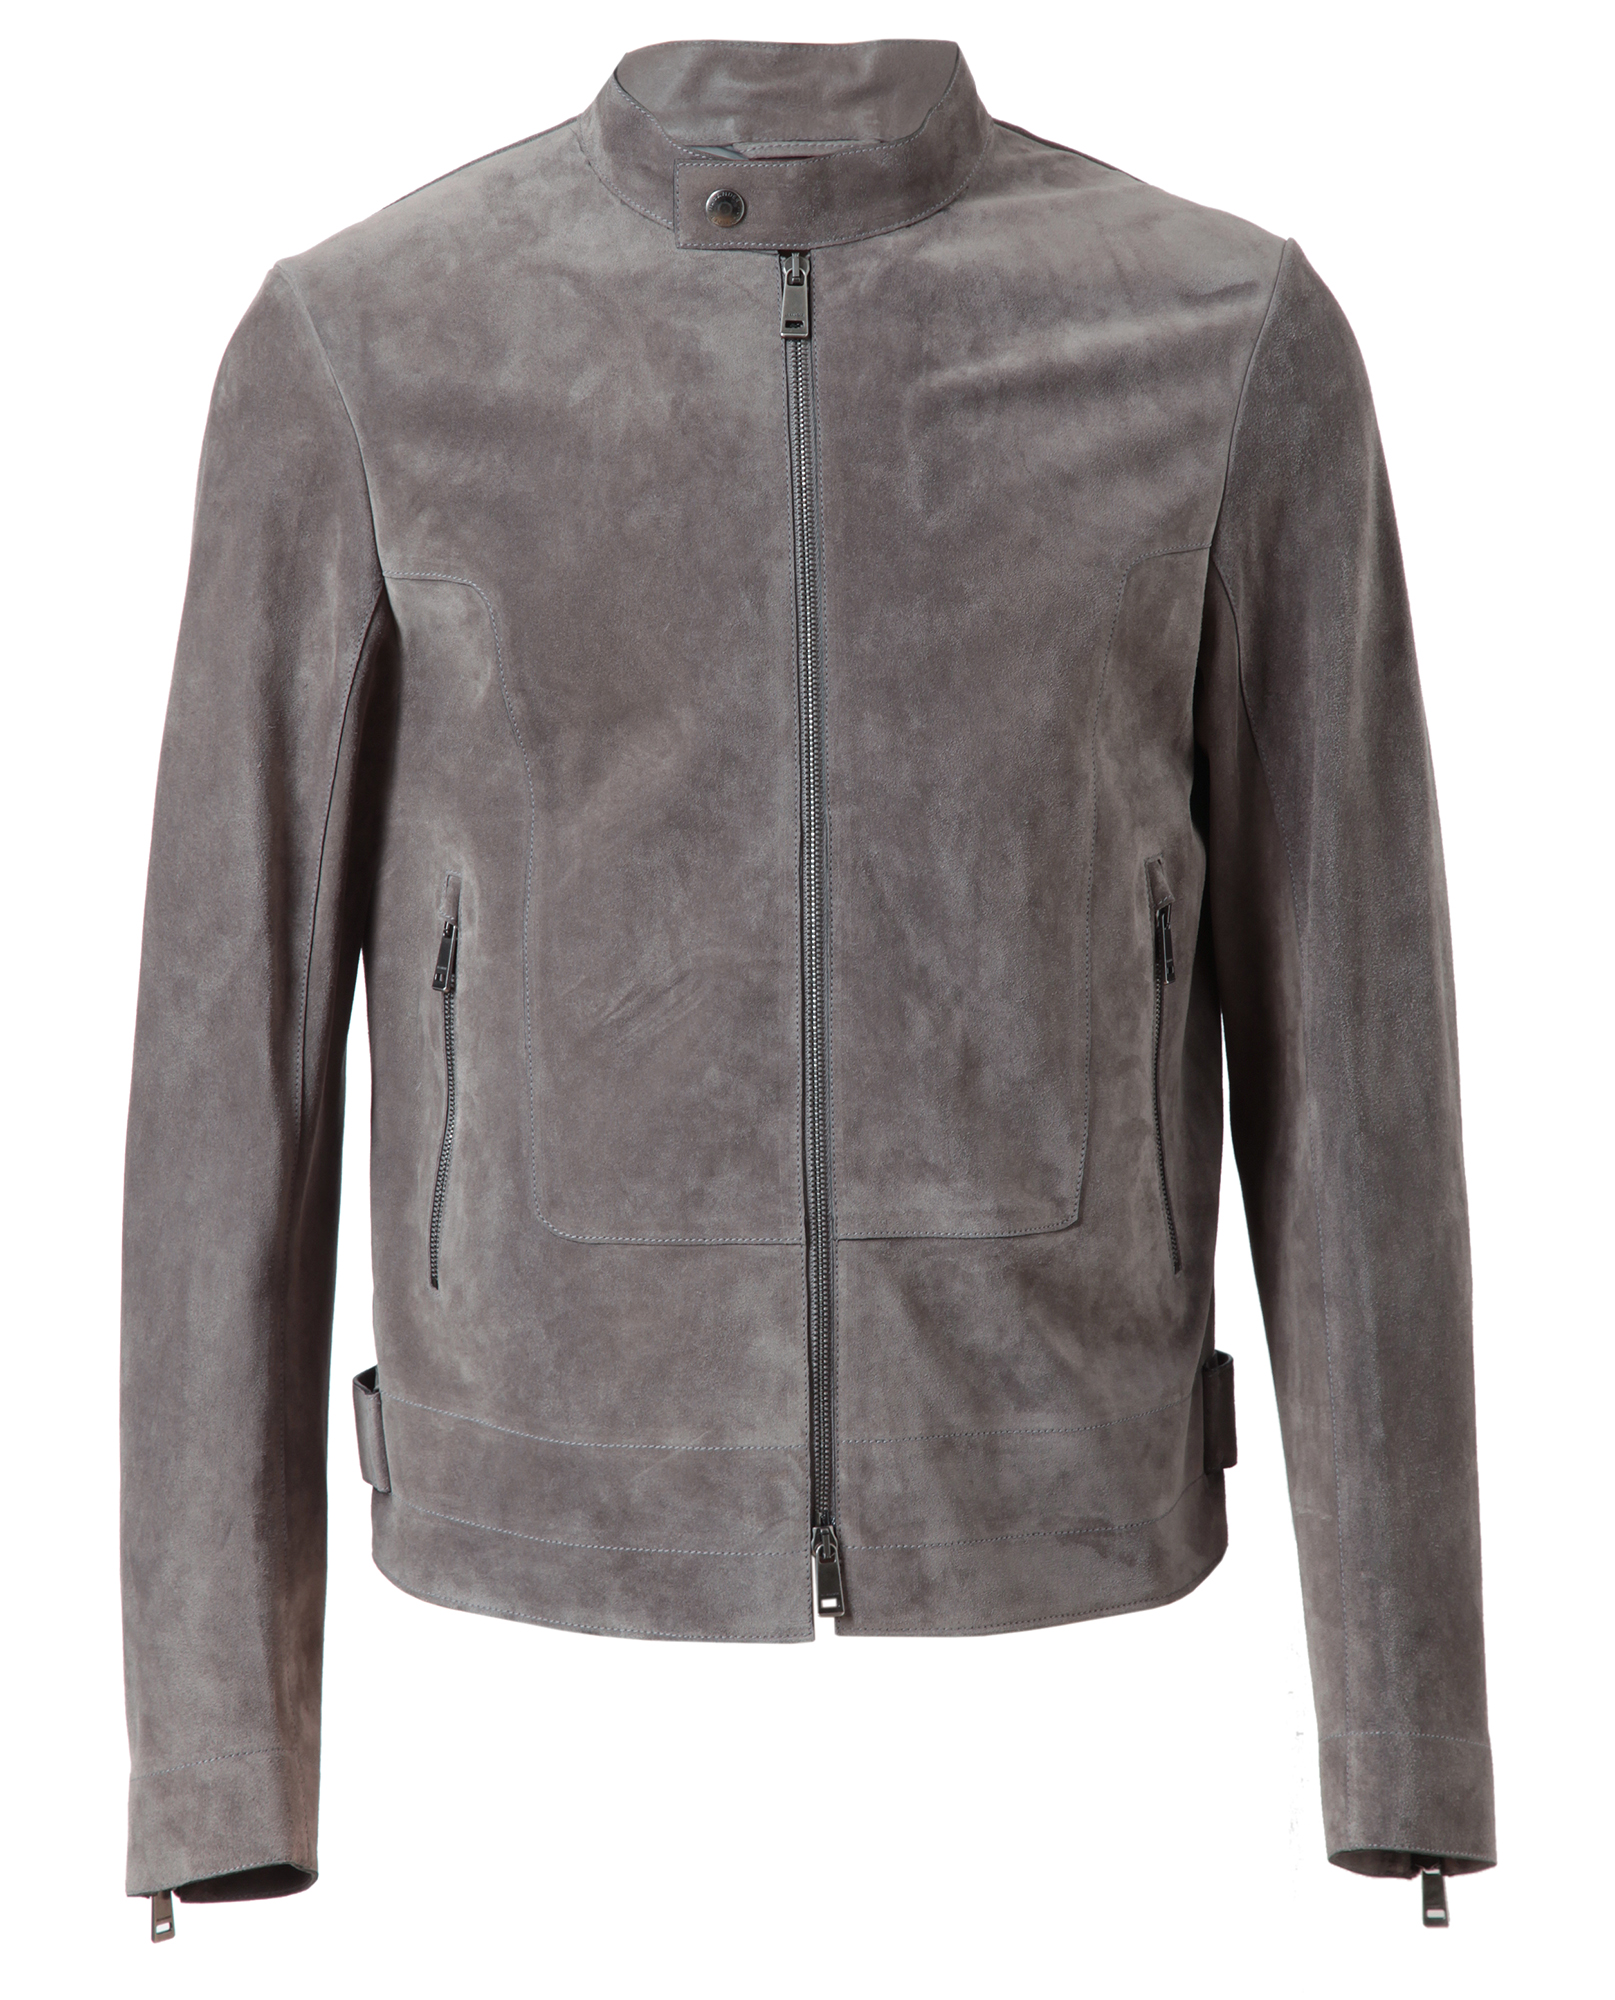 lyst jil sander brushed suede jacket in gray for men. Black Bedroom Furniture Sets. Home Design Ideas